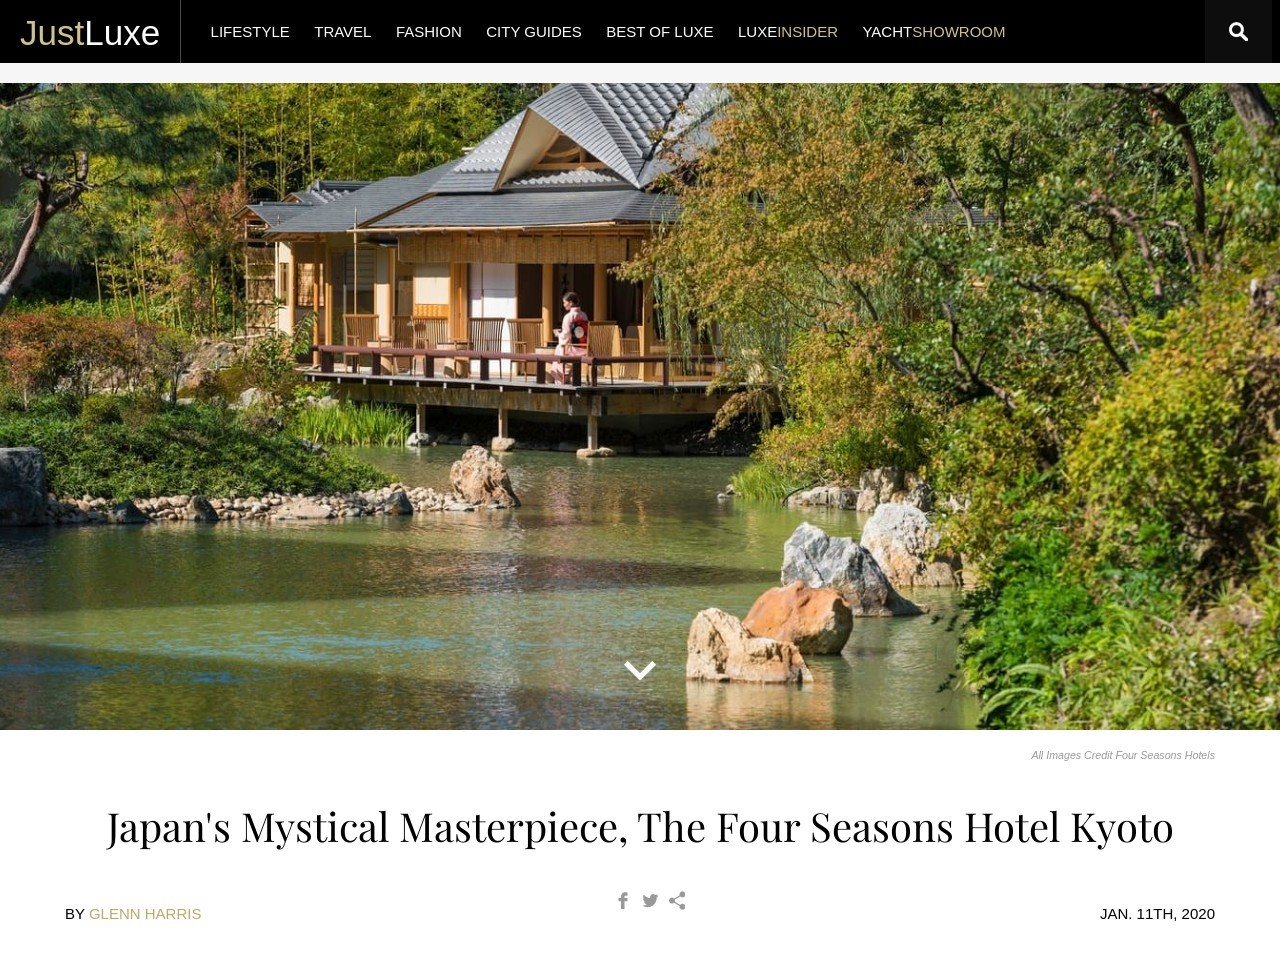 Japan's Mystical Masterpiece, The Four Seasons Hotel Kyoto